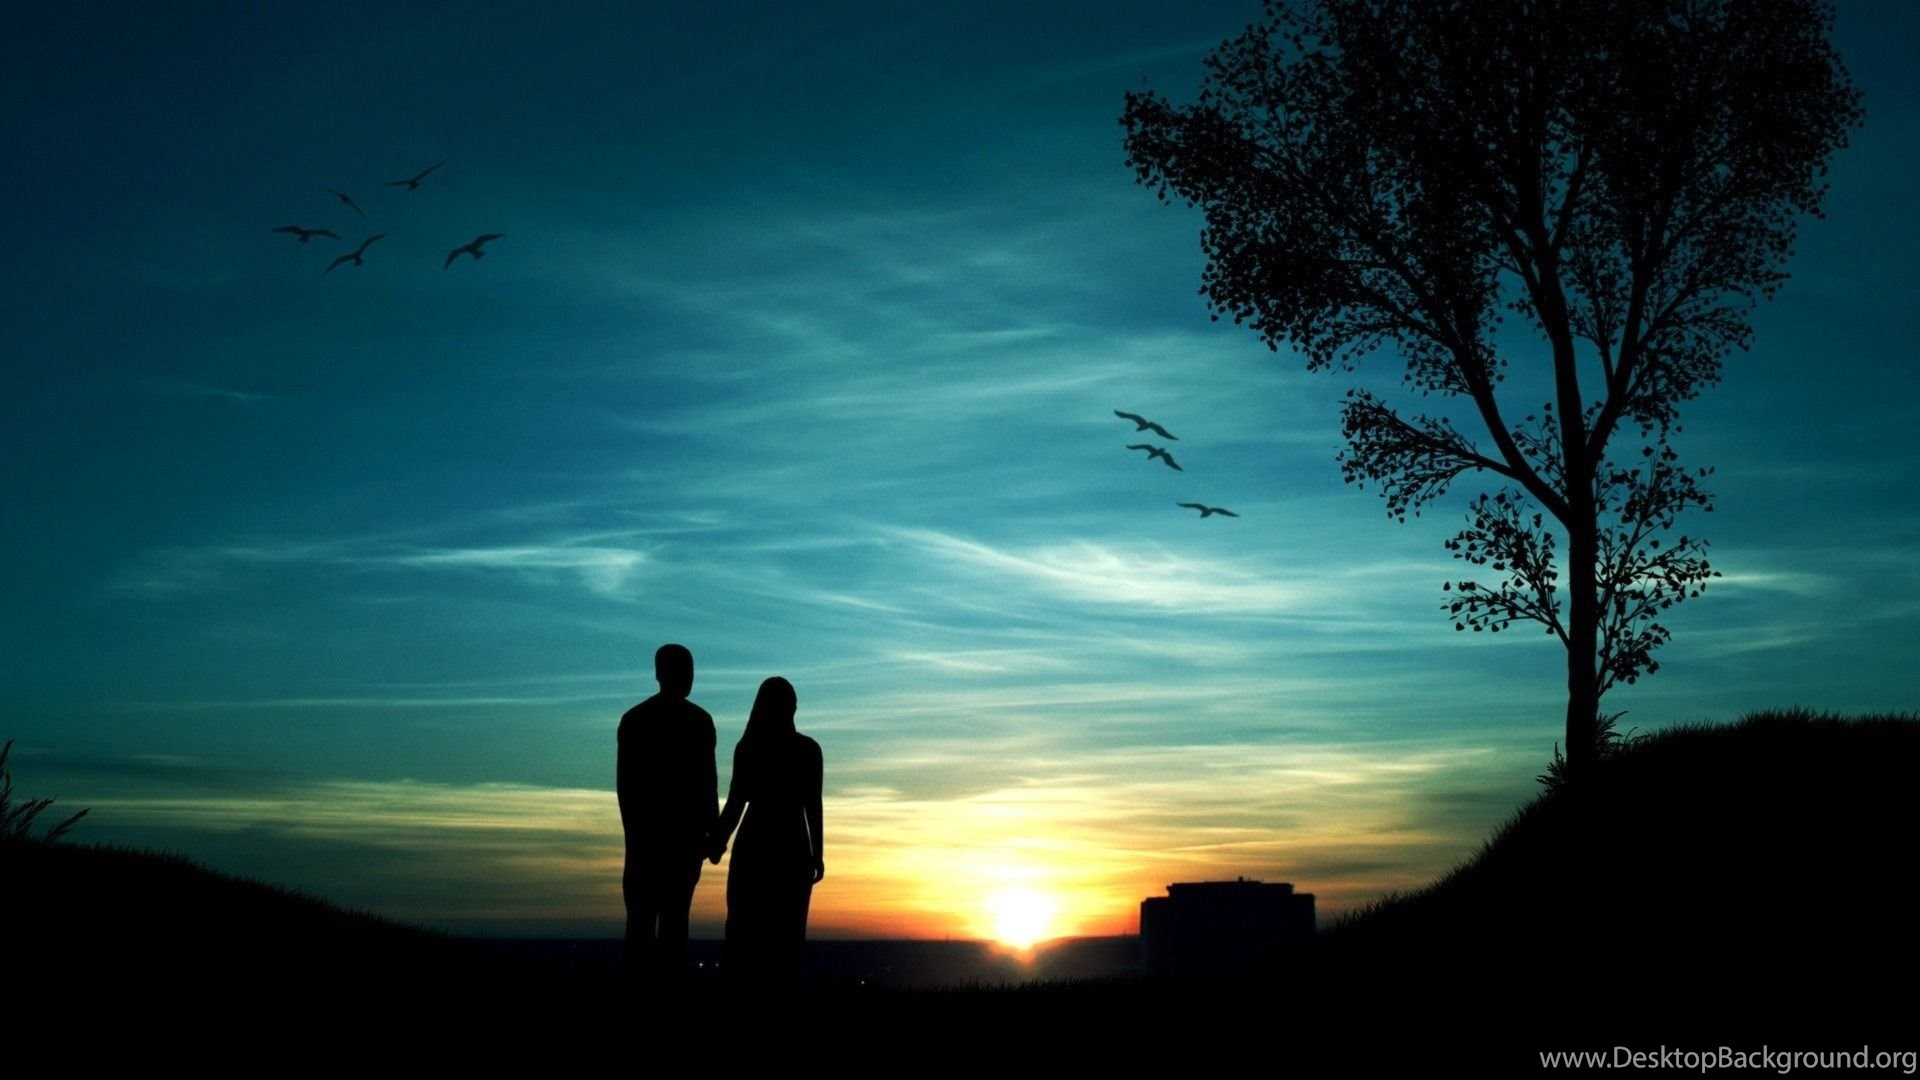 Boy Girl Couple In Sunset Picture Wallpapers Gallery Desktop